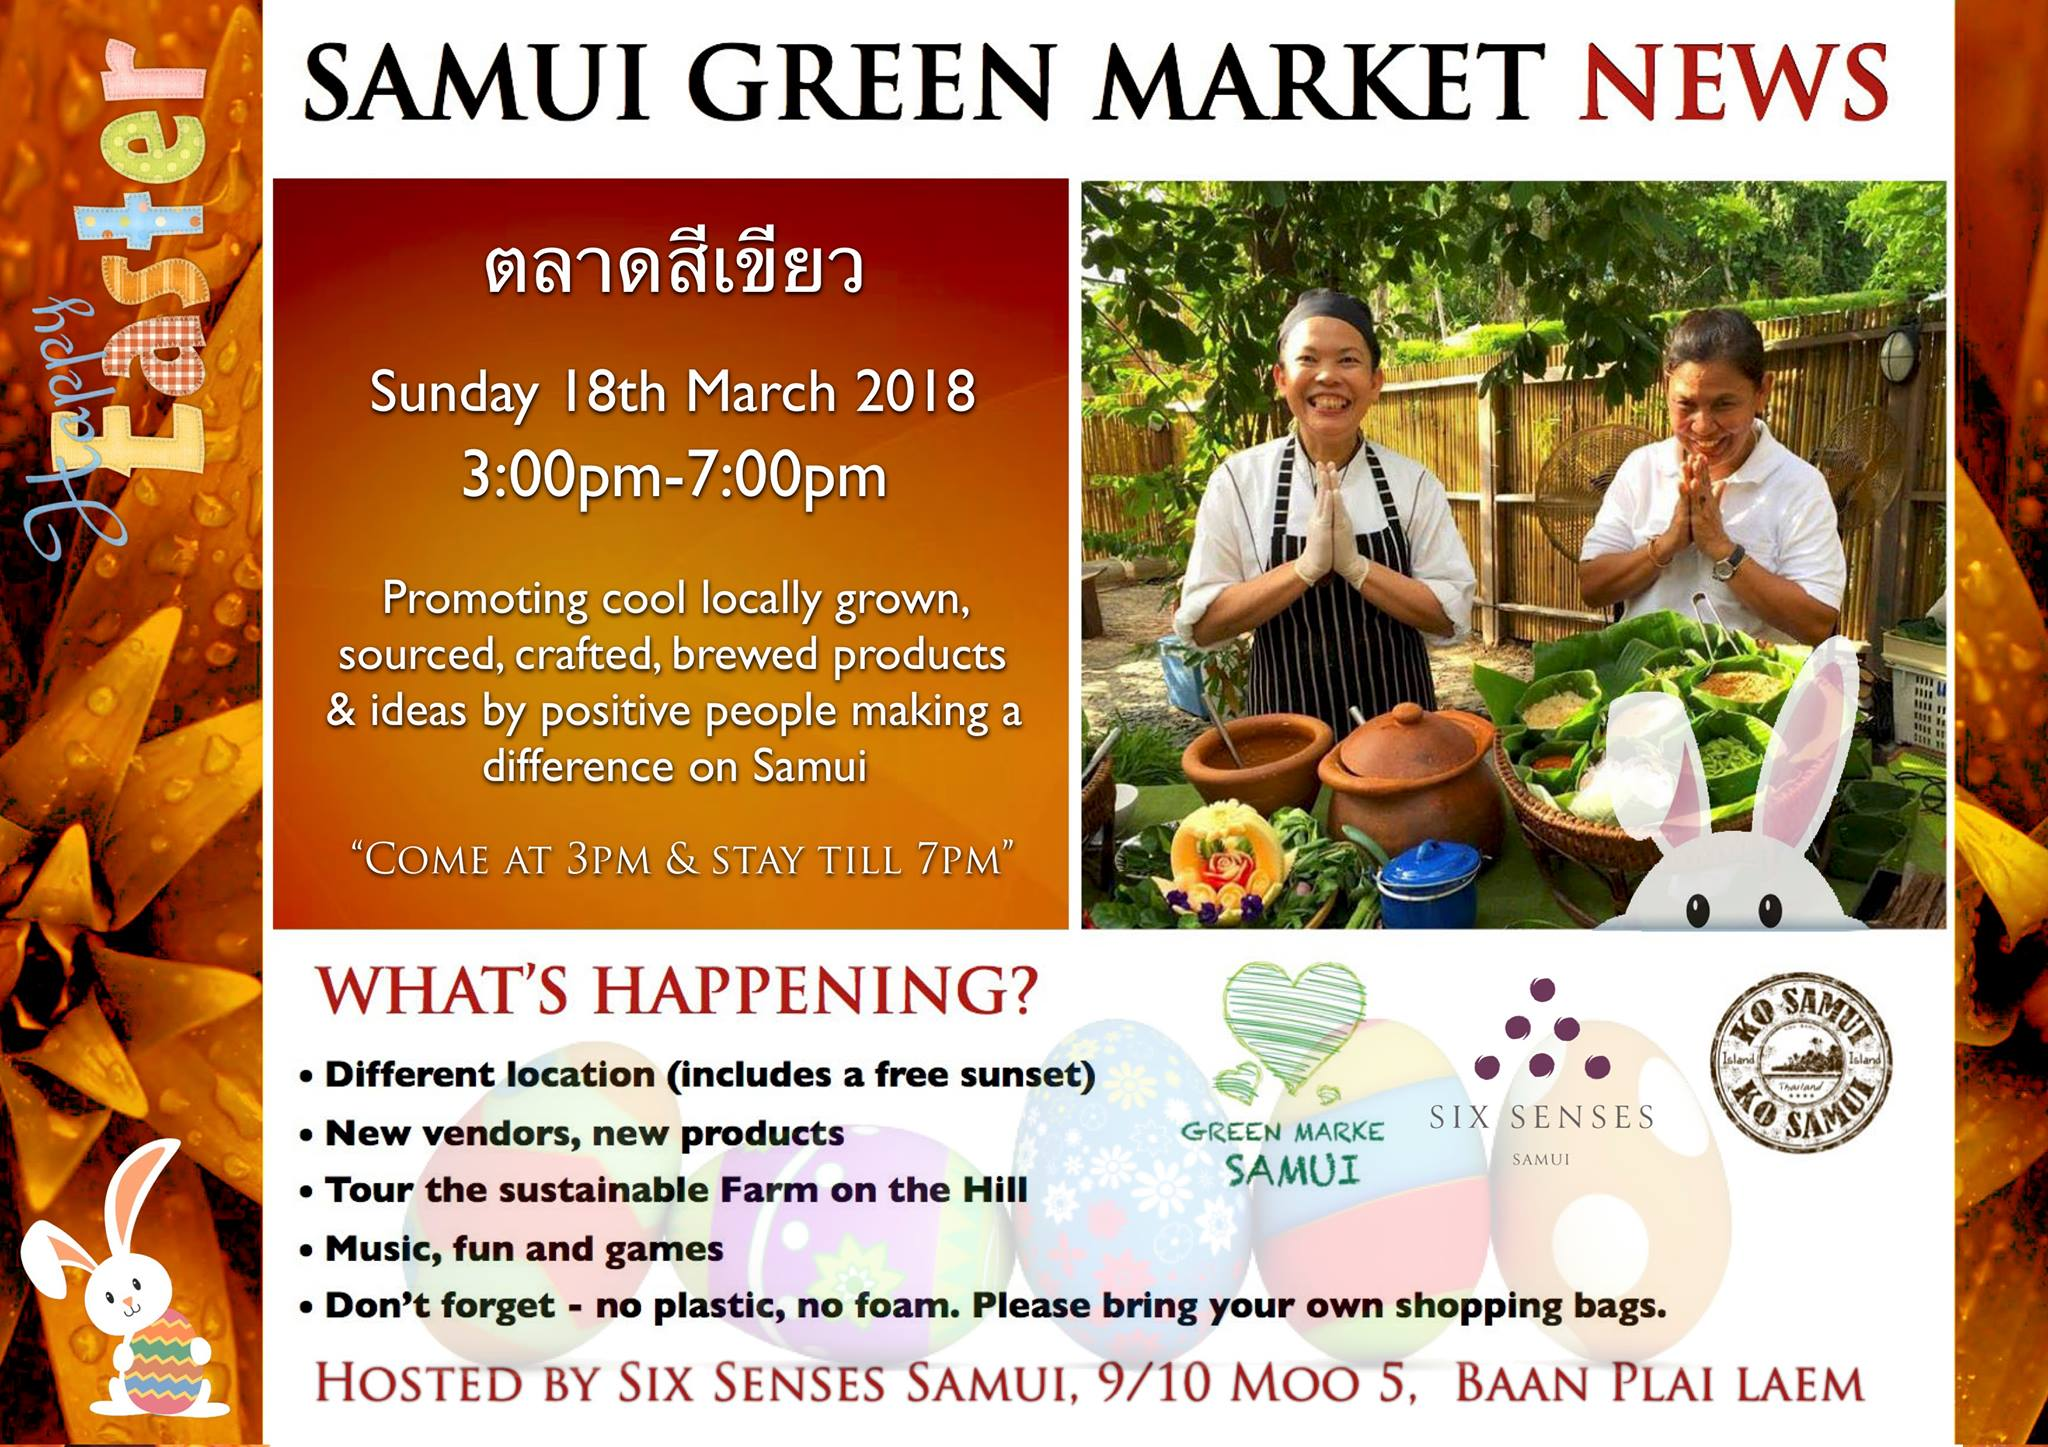 'Eggtravaganza' Samui Green Market – Sunday 18th March | Samui Times